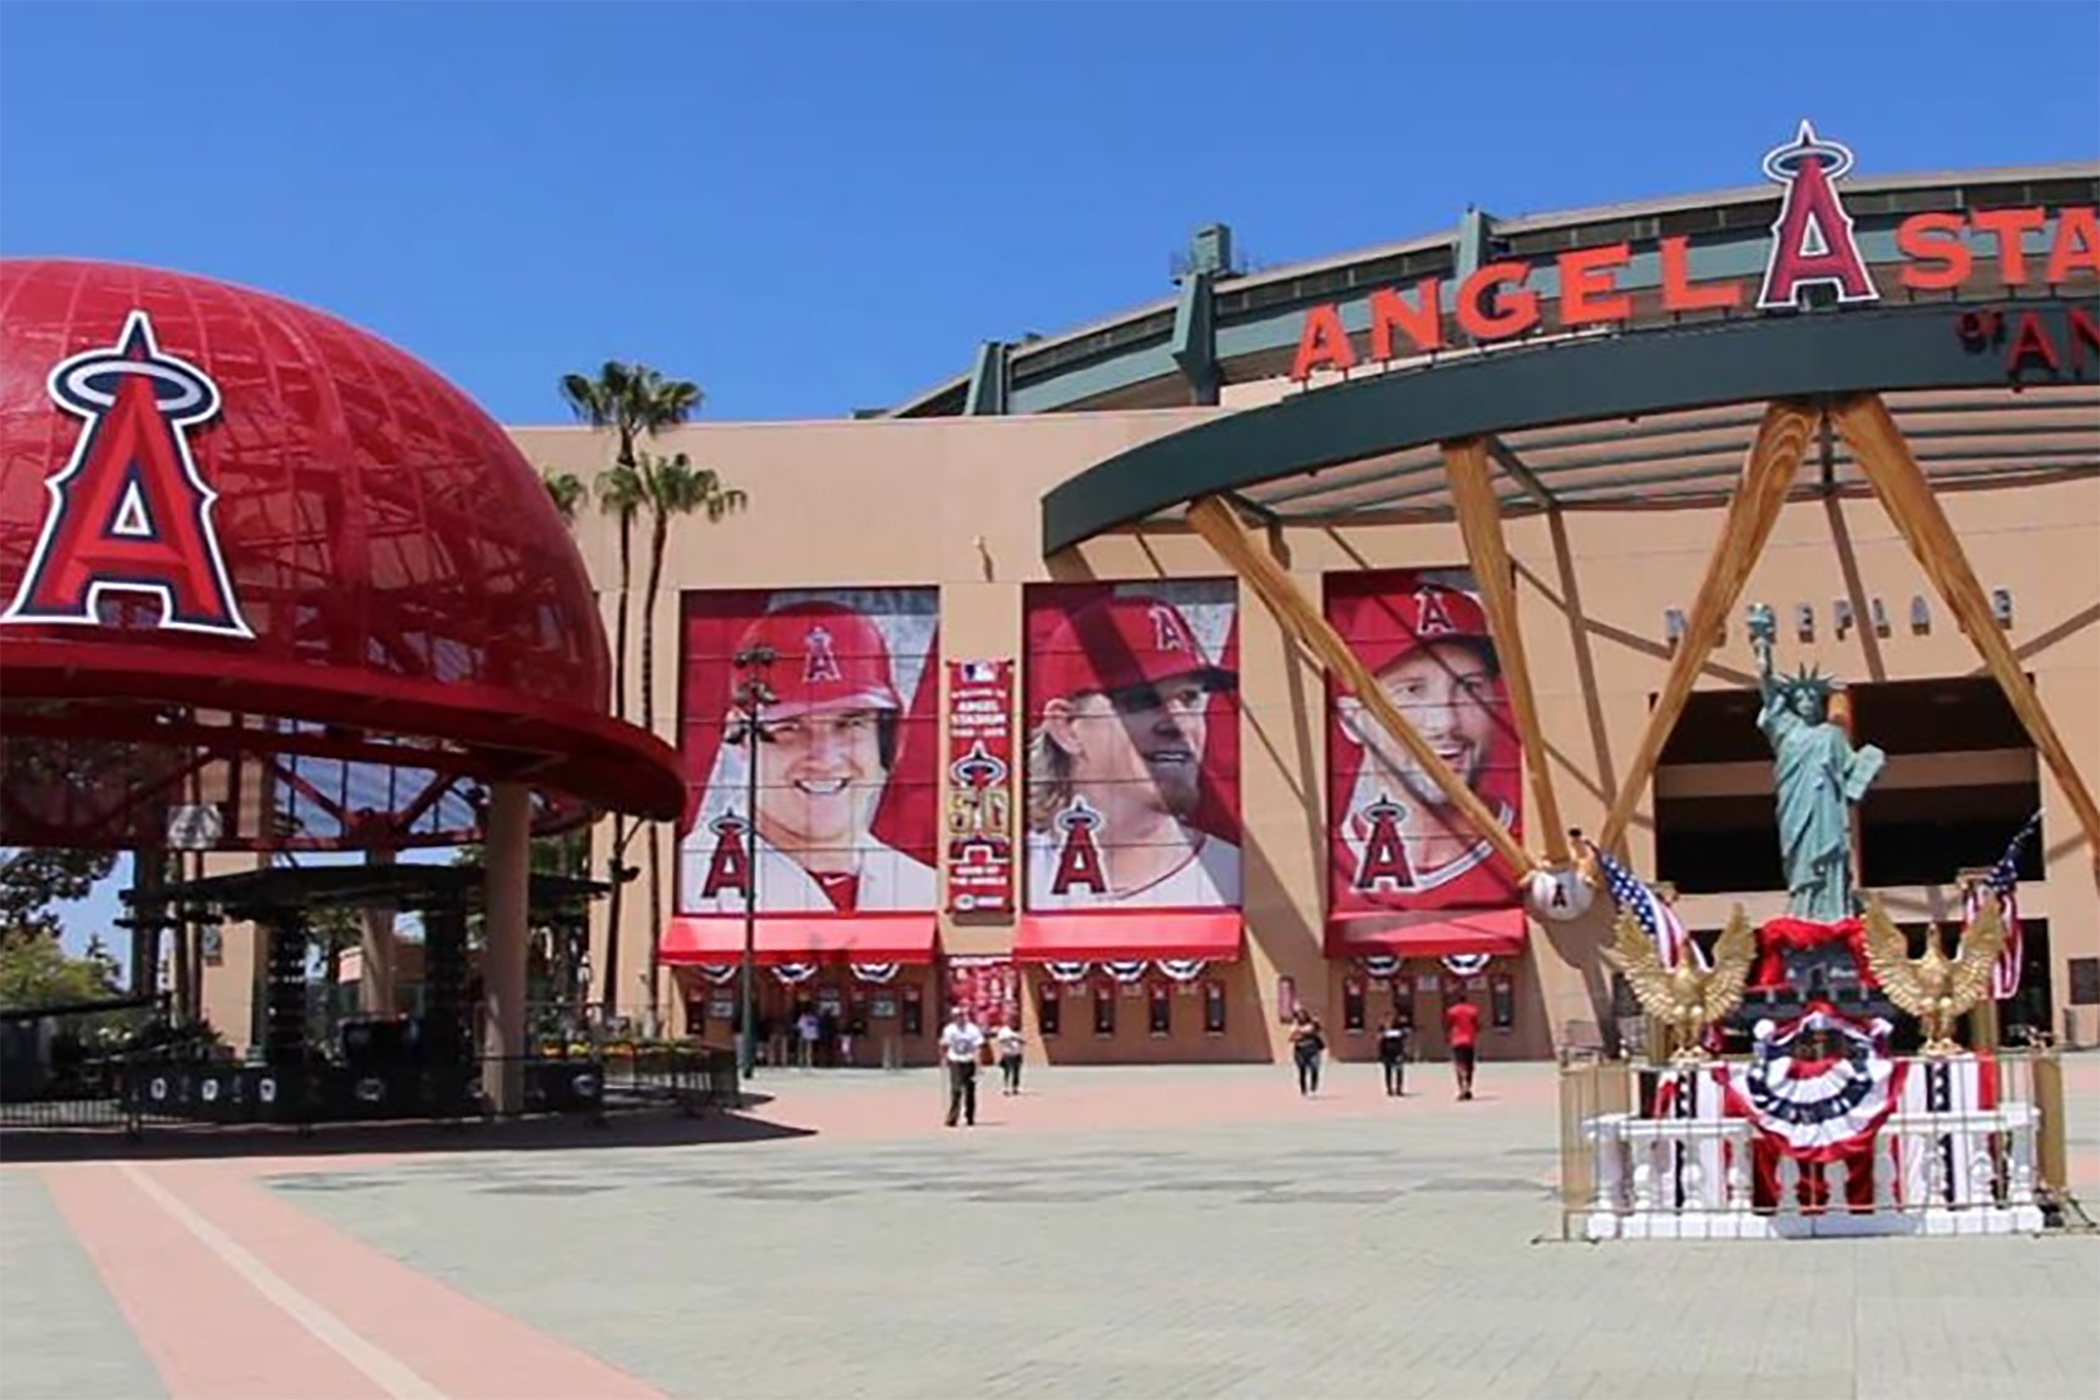 California sports venues such as Angel Stadium could resume games with no spectators by early June. (Major League Baseball)